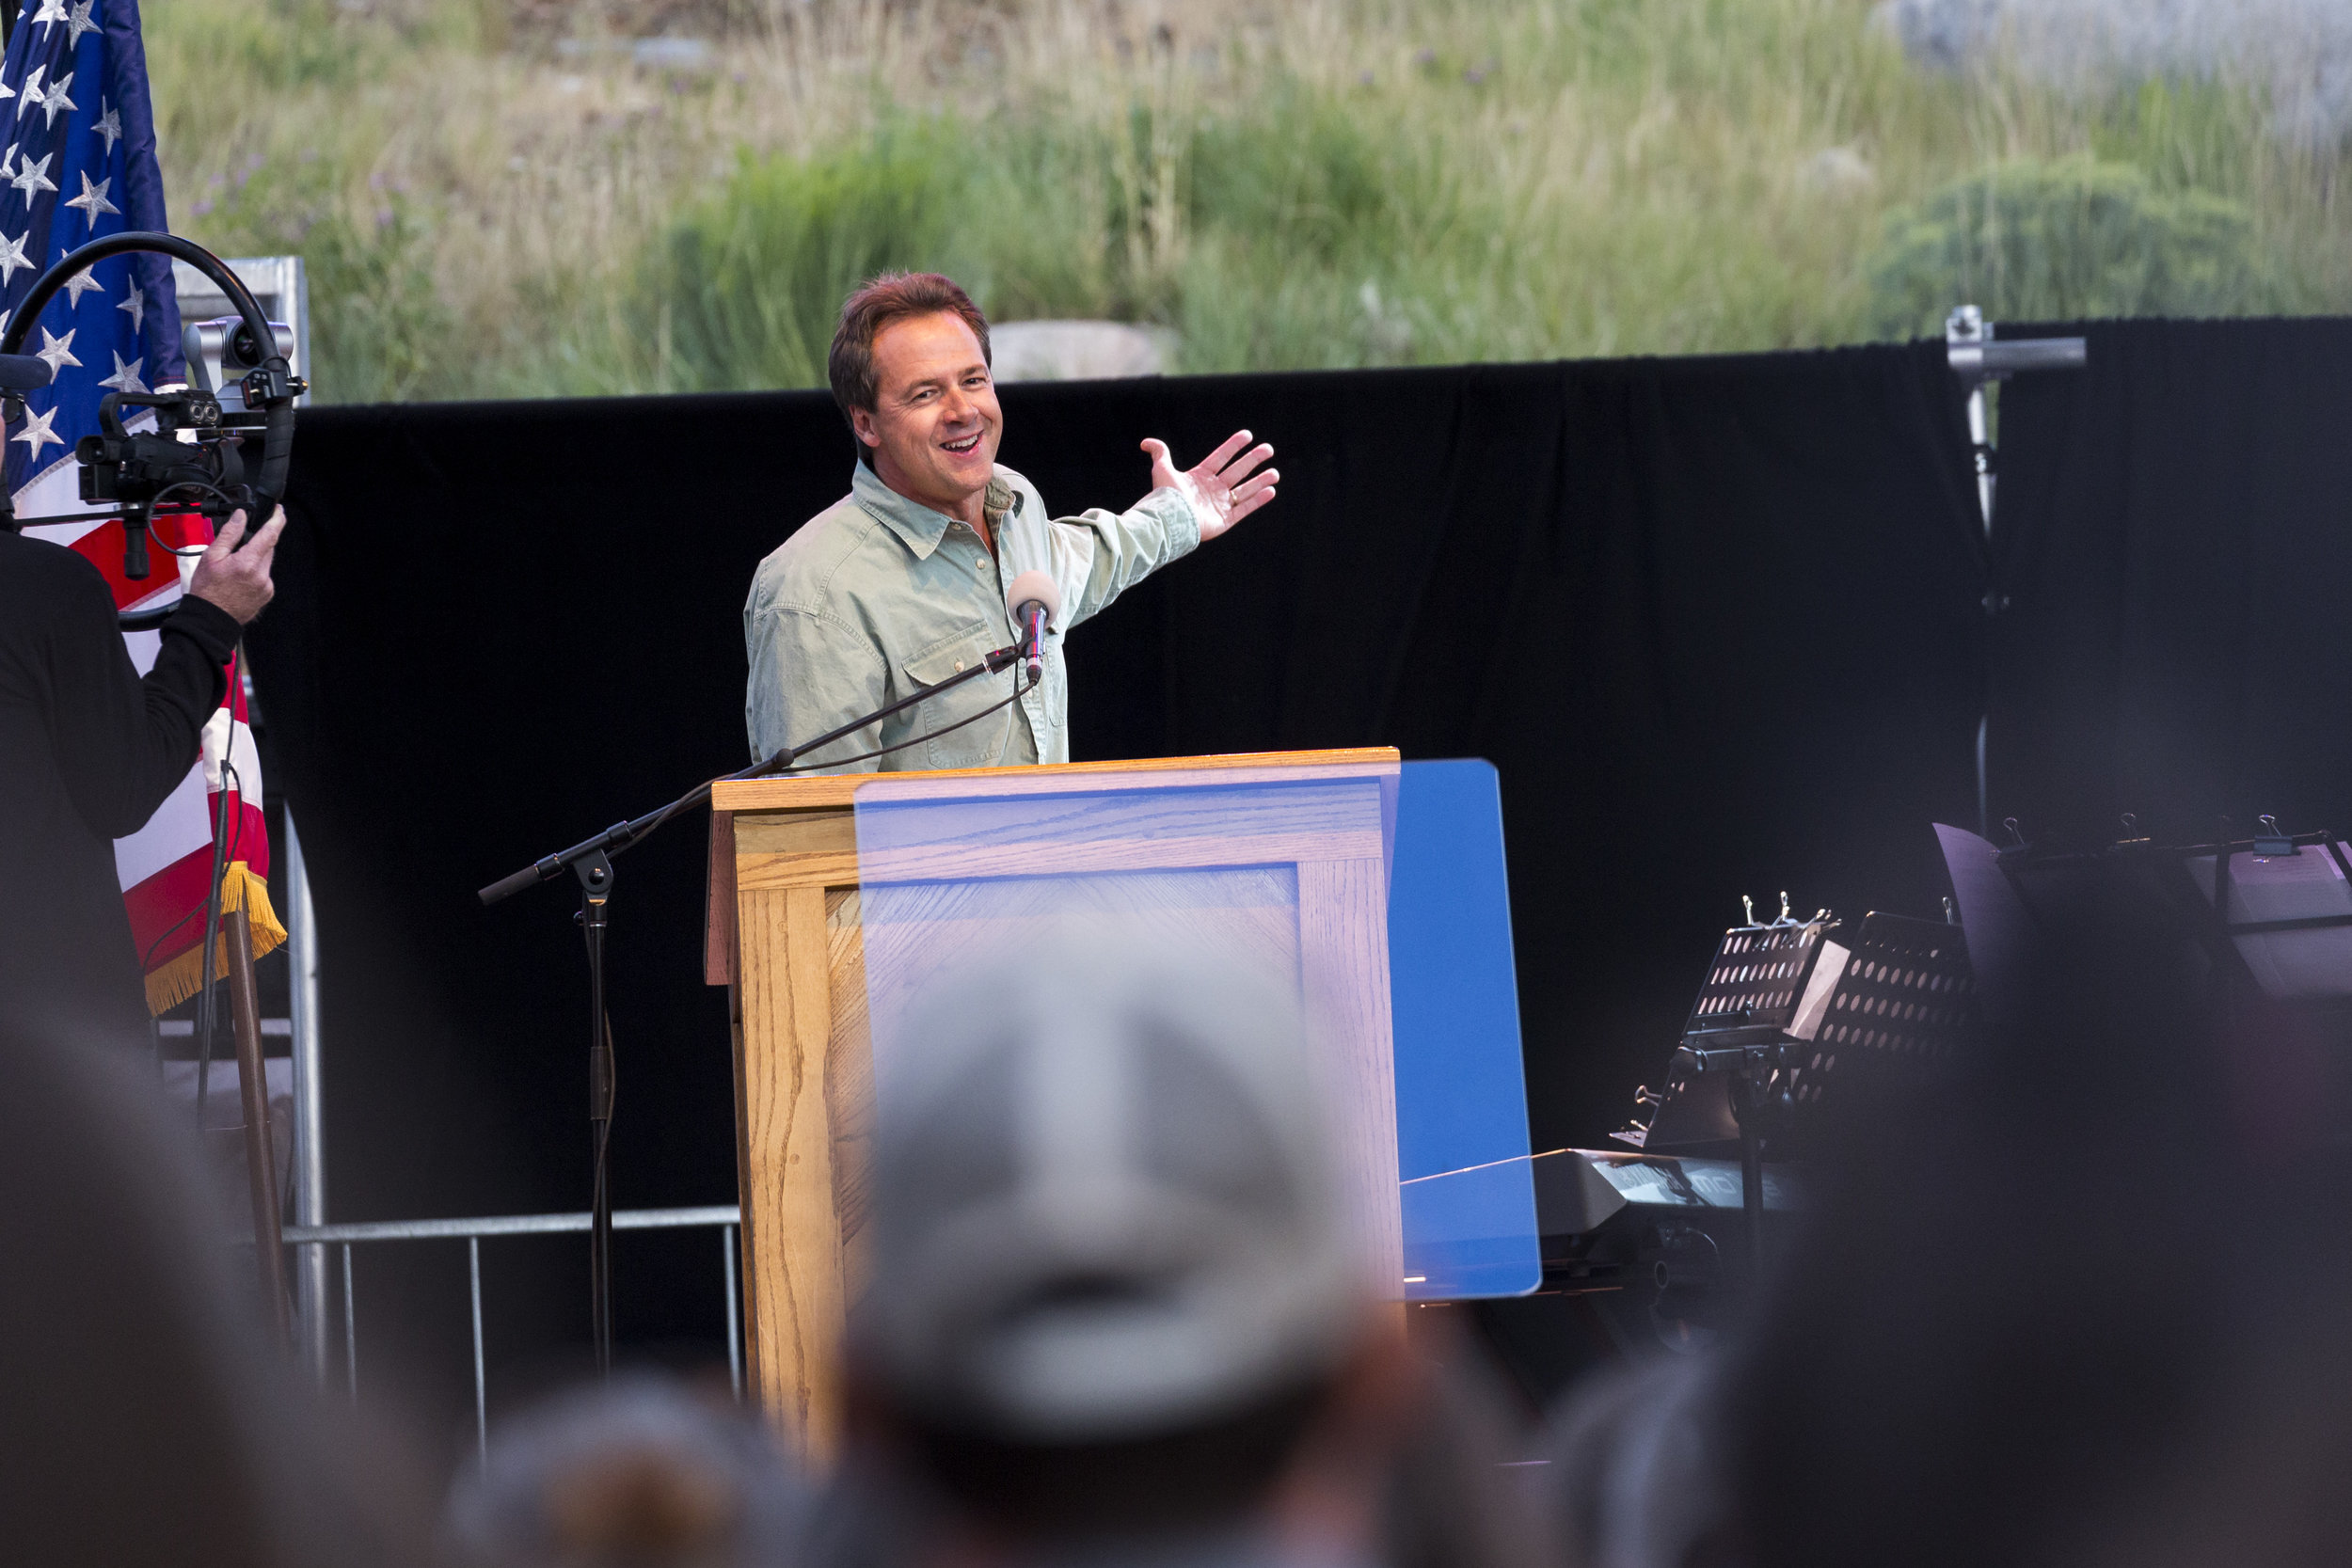 Governor Bullock speaks to an audience at Yellowstone National Park // Wikimedia Commons